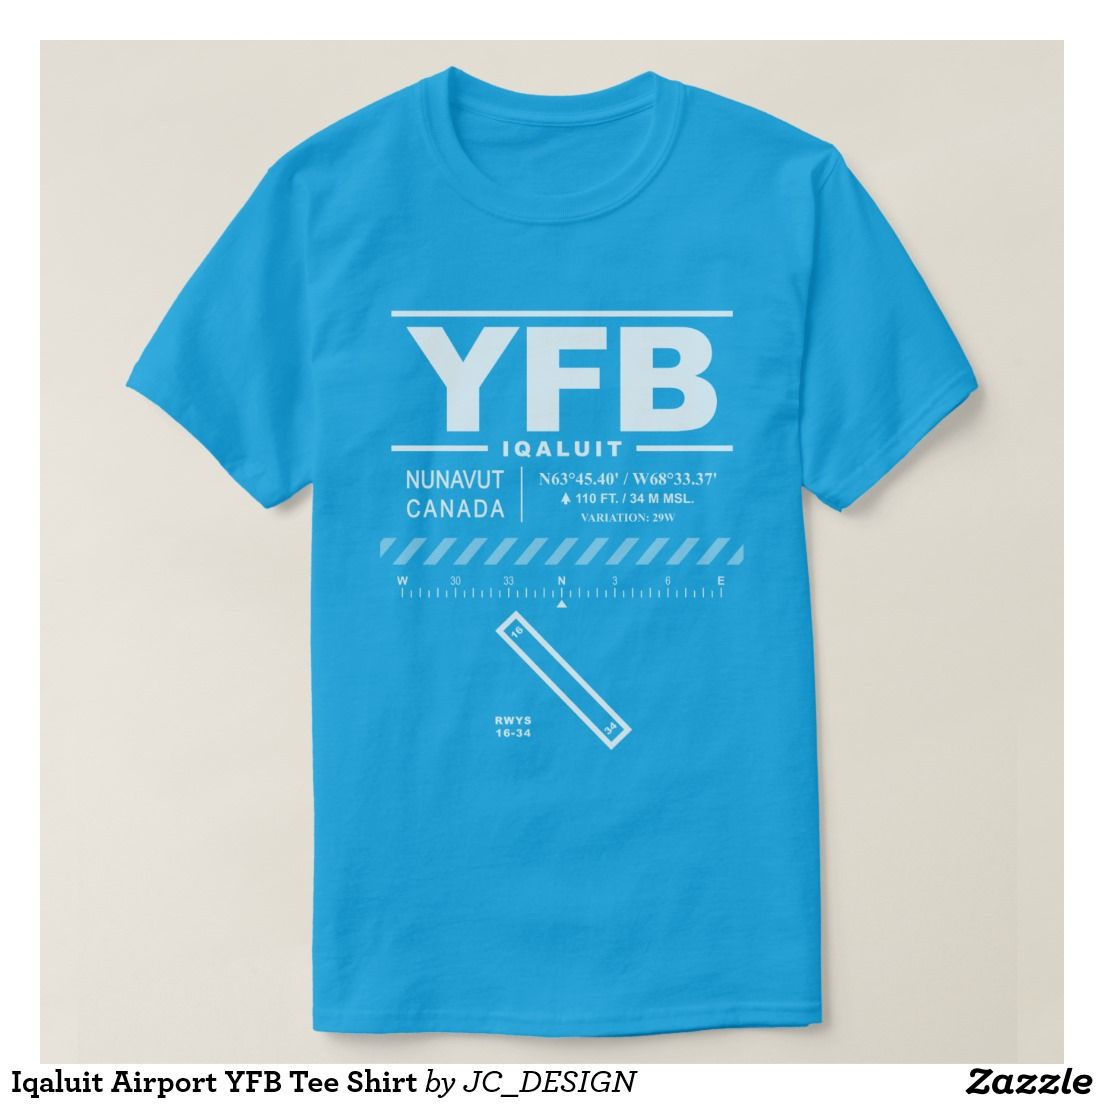 Iqaluit airport yfb tee shirt design features air navigation